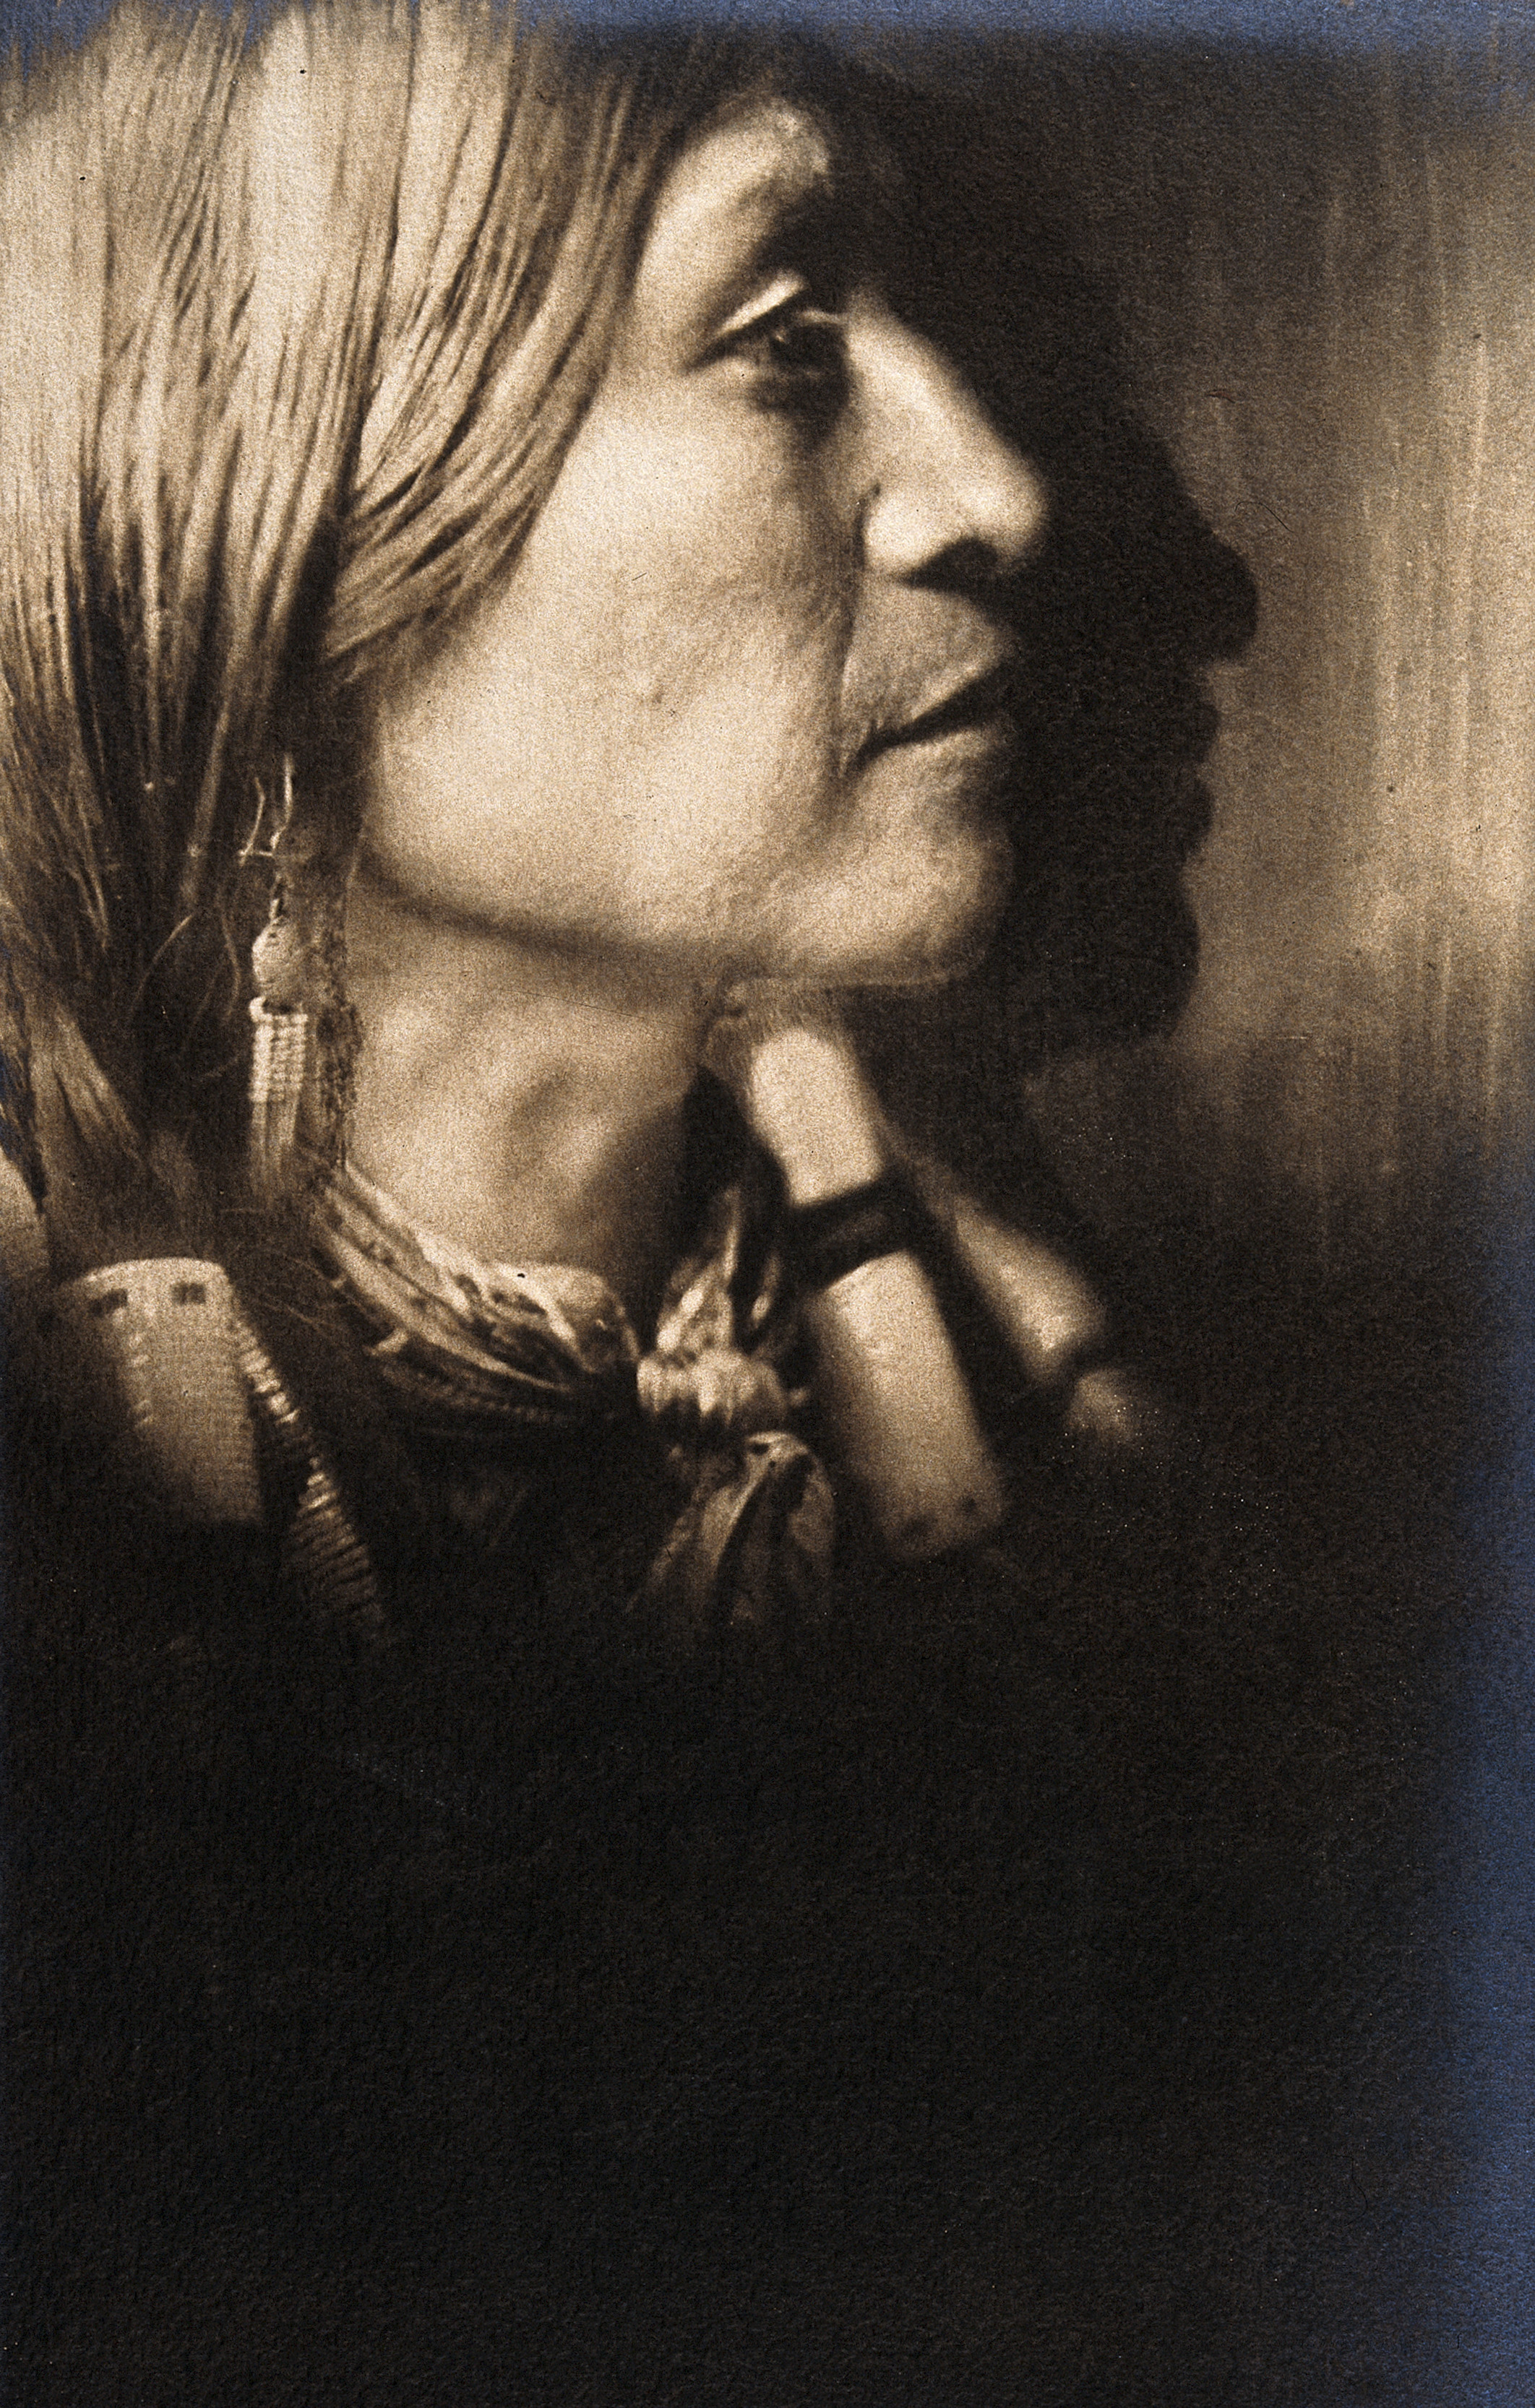 This photograph shows a Jicarilla Indian Chief in ceremonial dress.